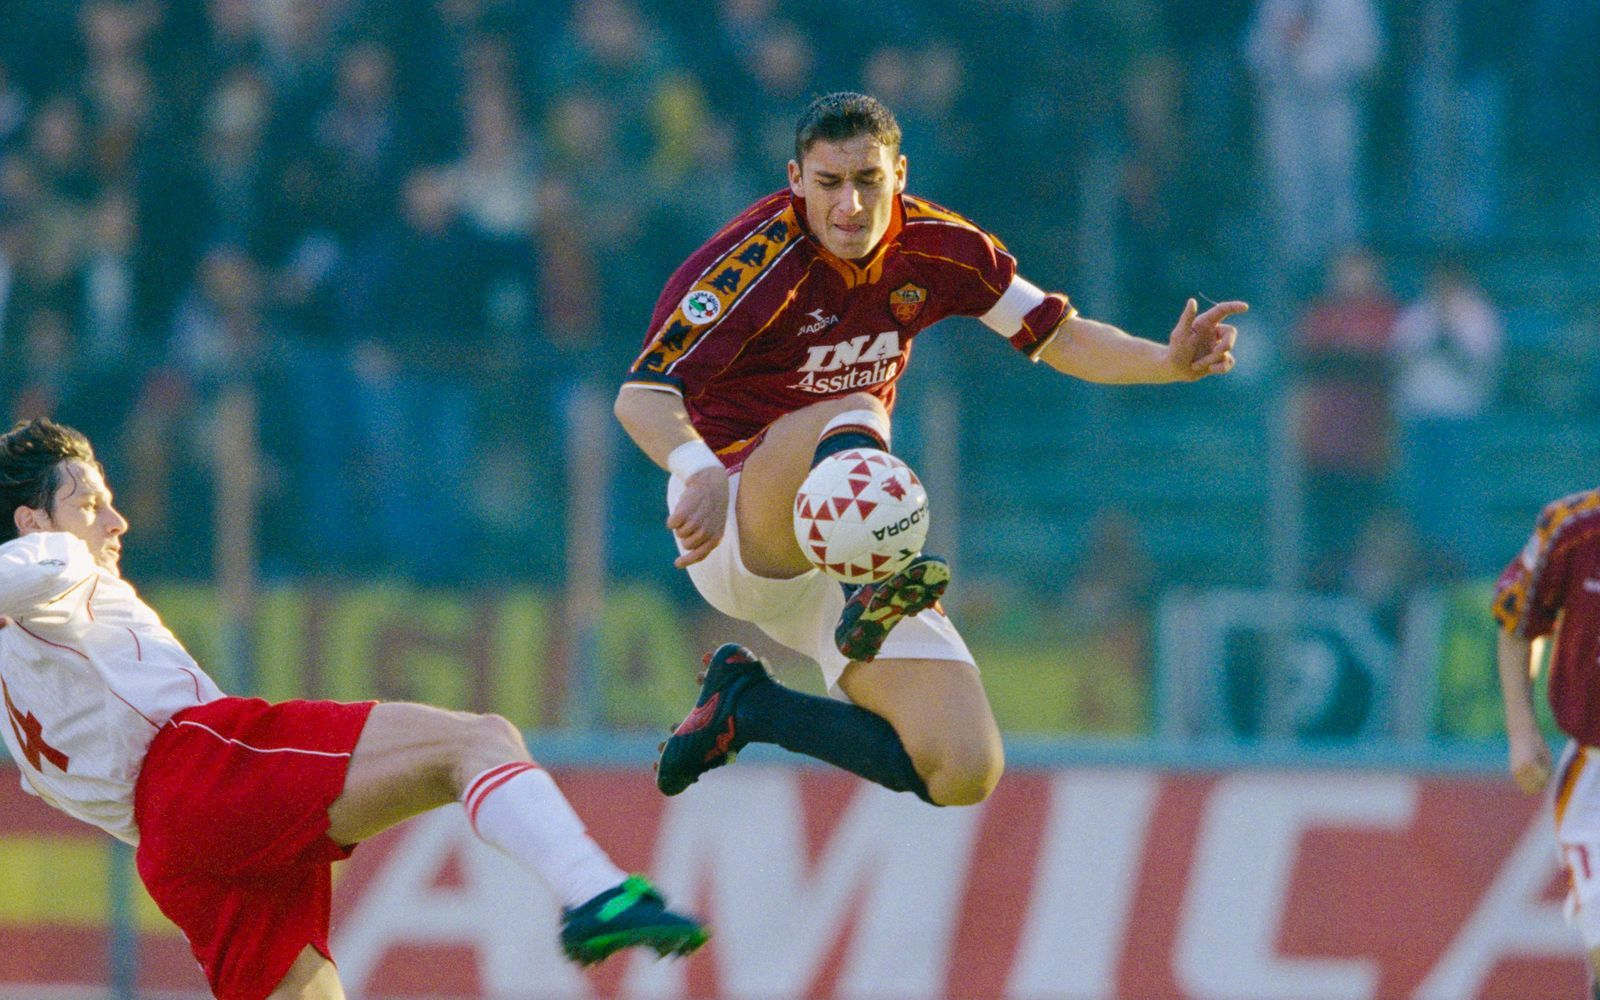 The film about the life and career of Francesco Totti